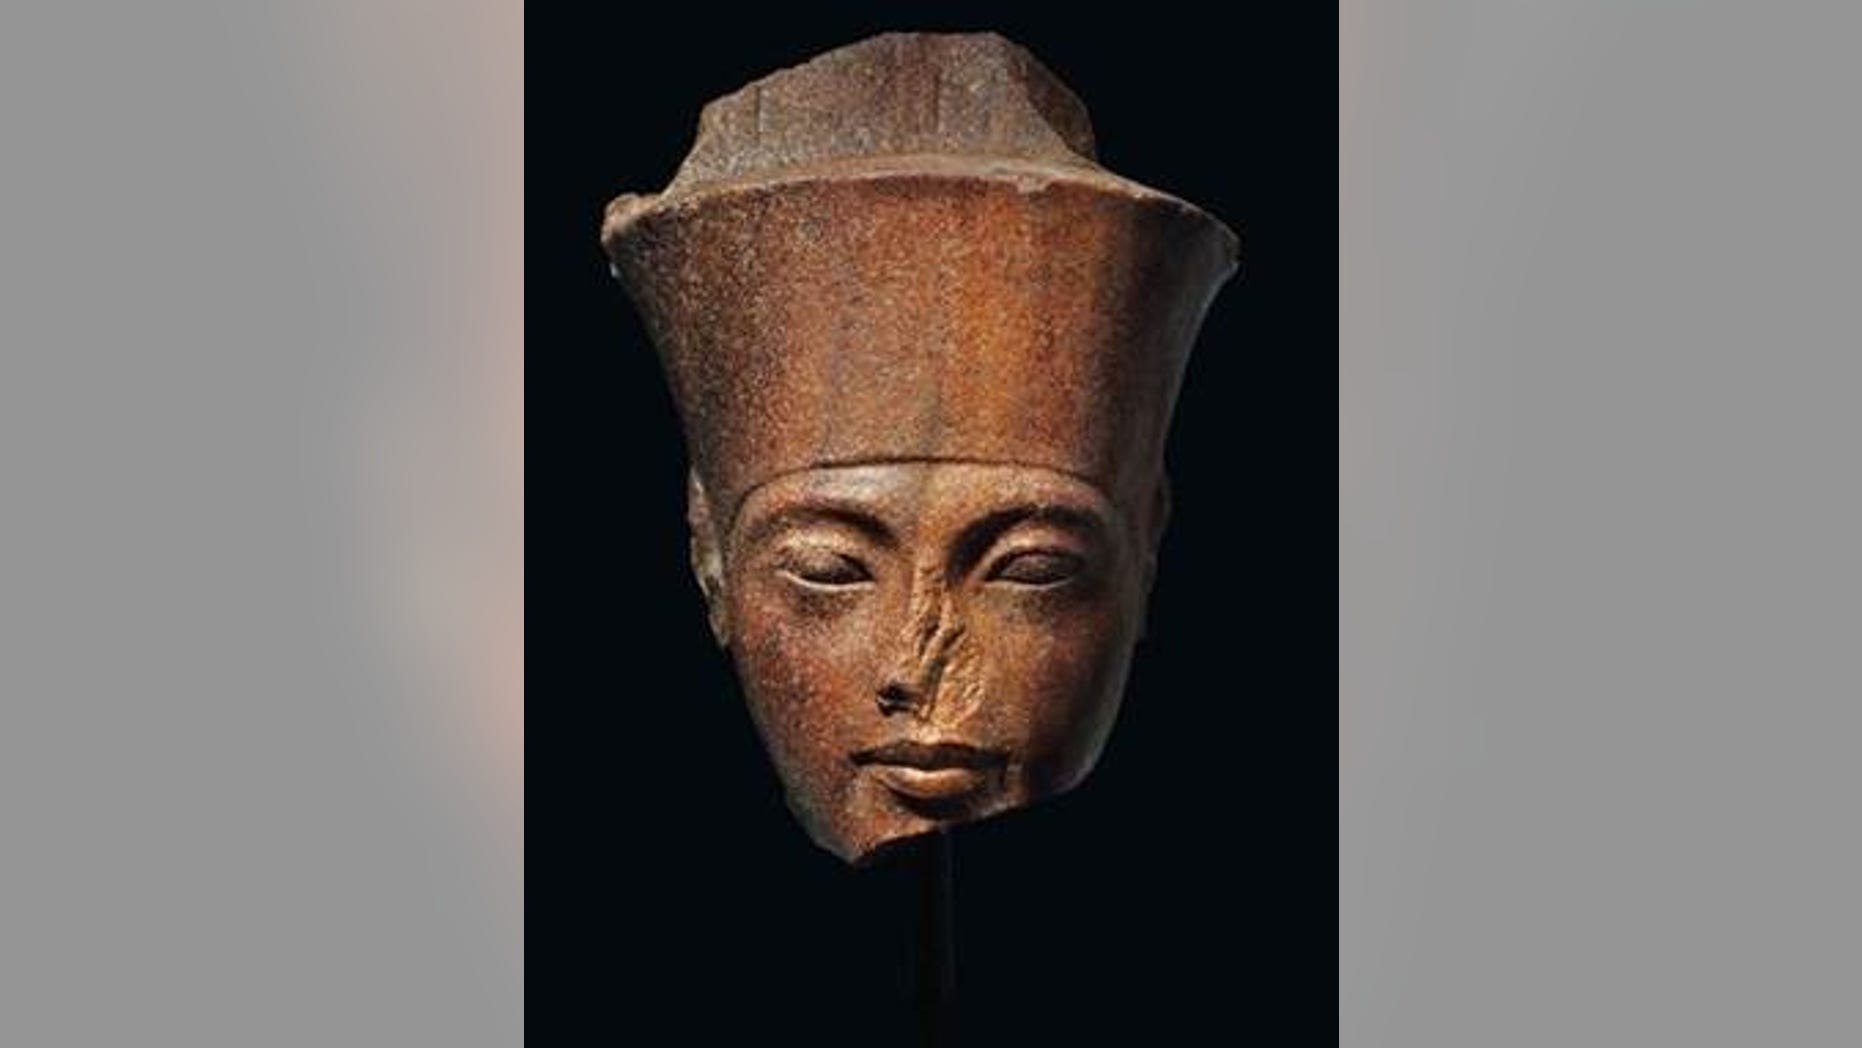 The 3,000-year-old stone sculpture of Tutankhamun sold for nearly $6 million at auction.